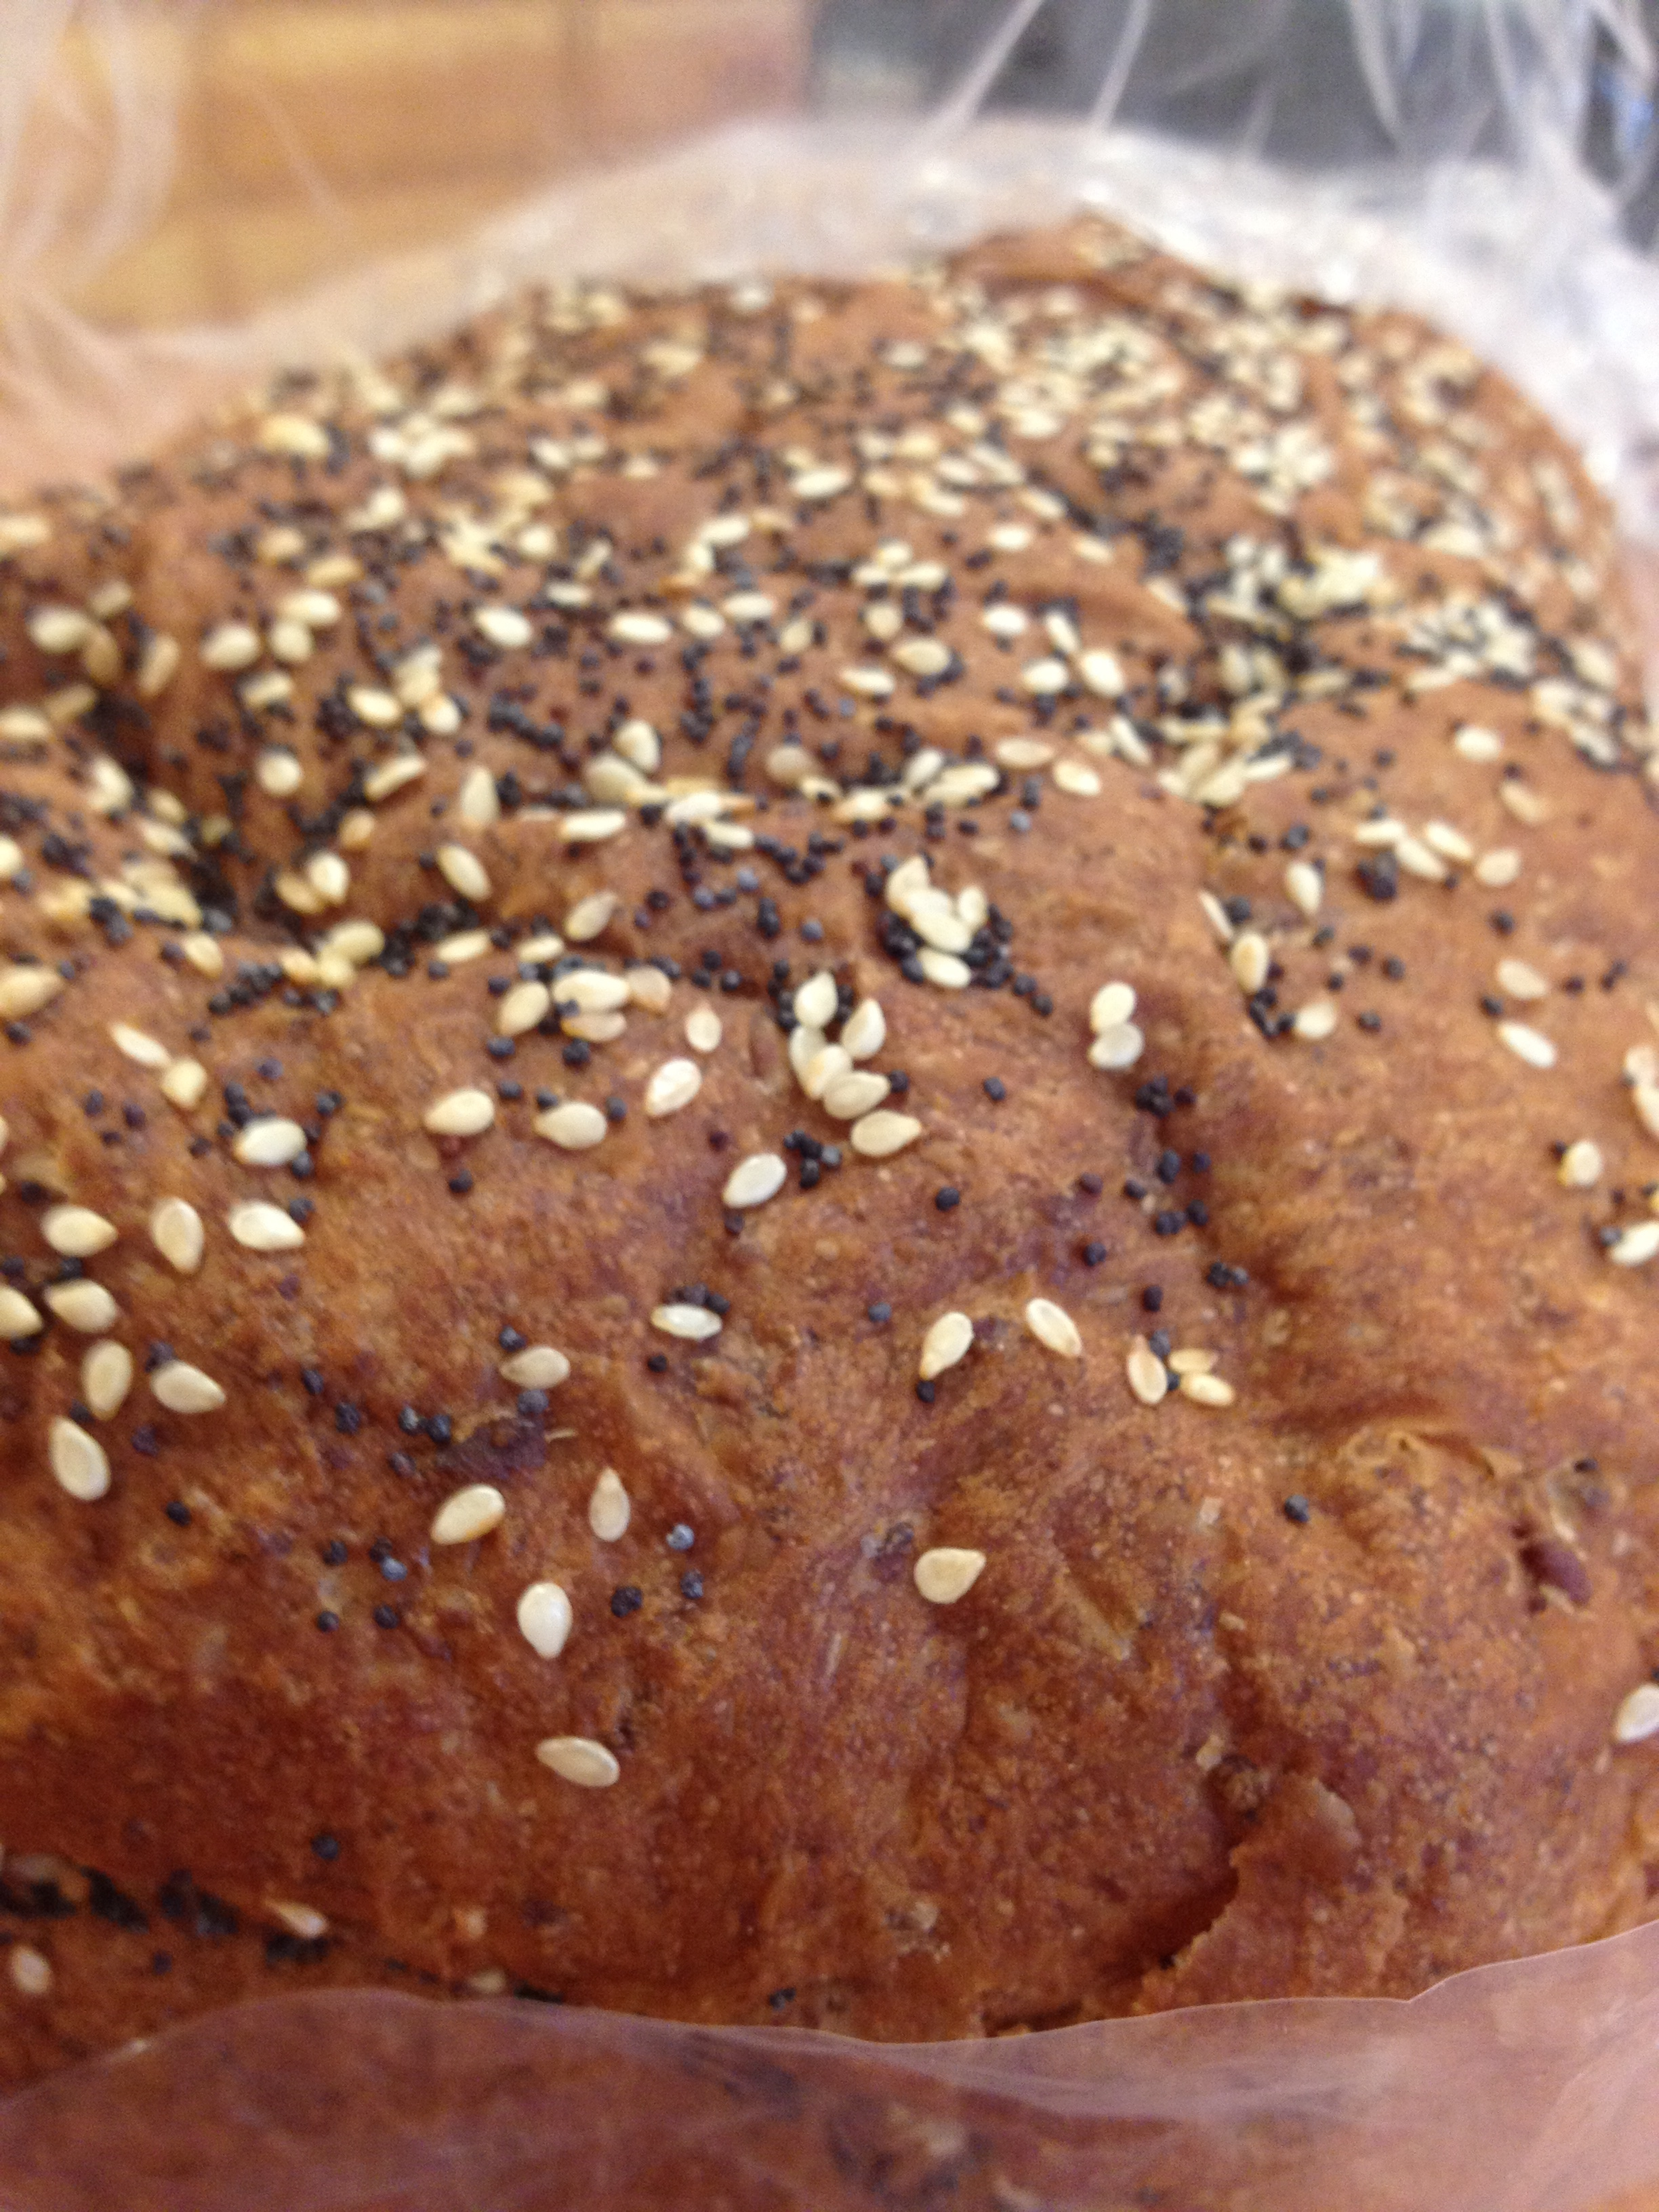 Seven-Grain Bread Is A Hearty, Nutty Loaf.